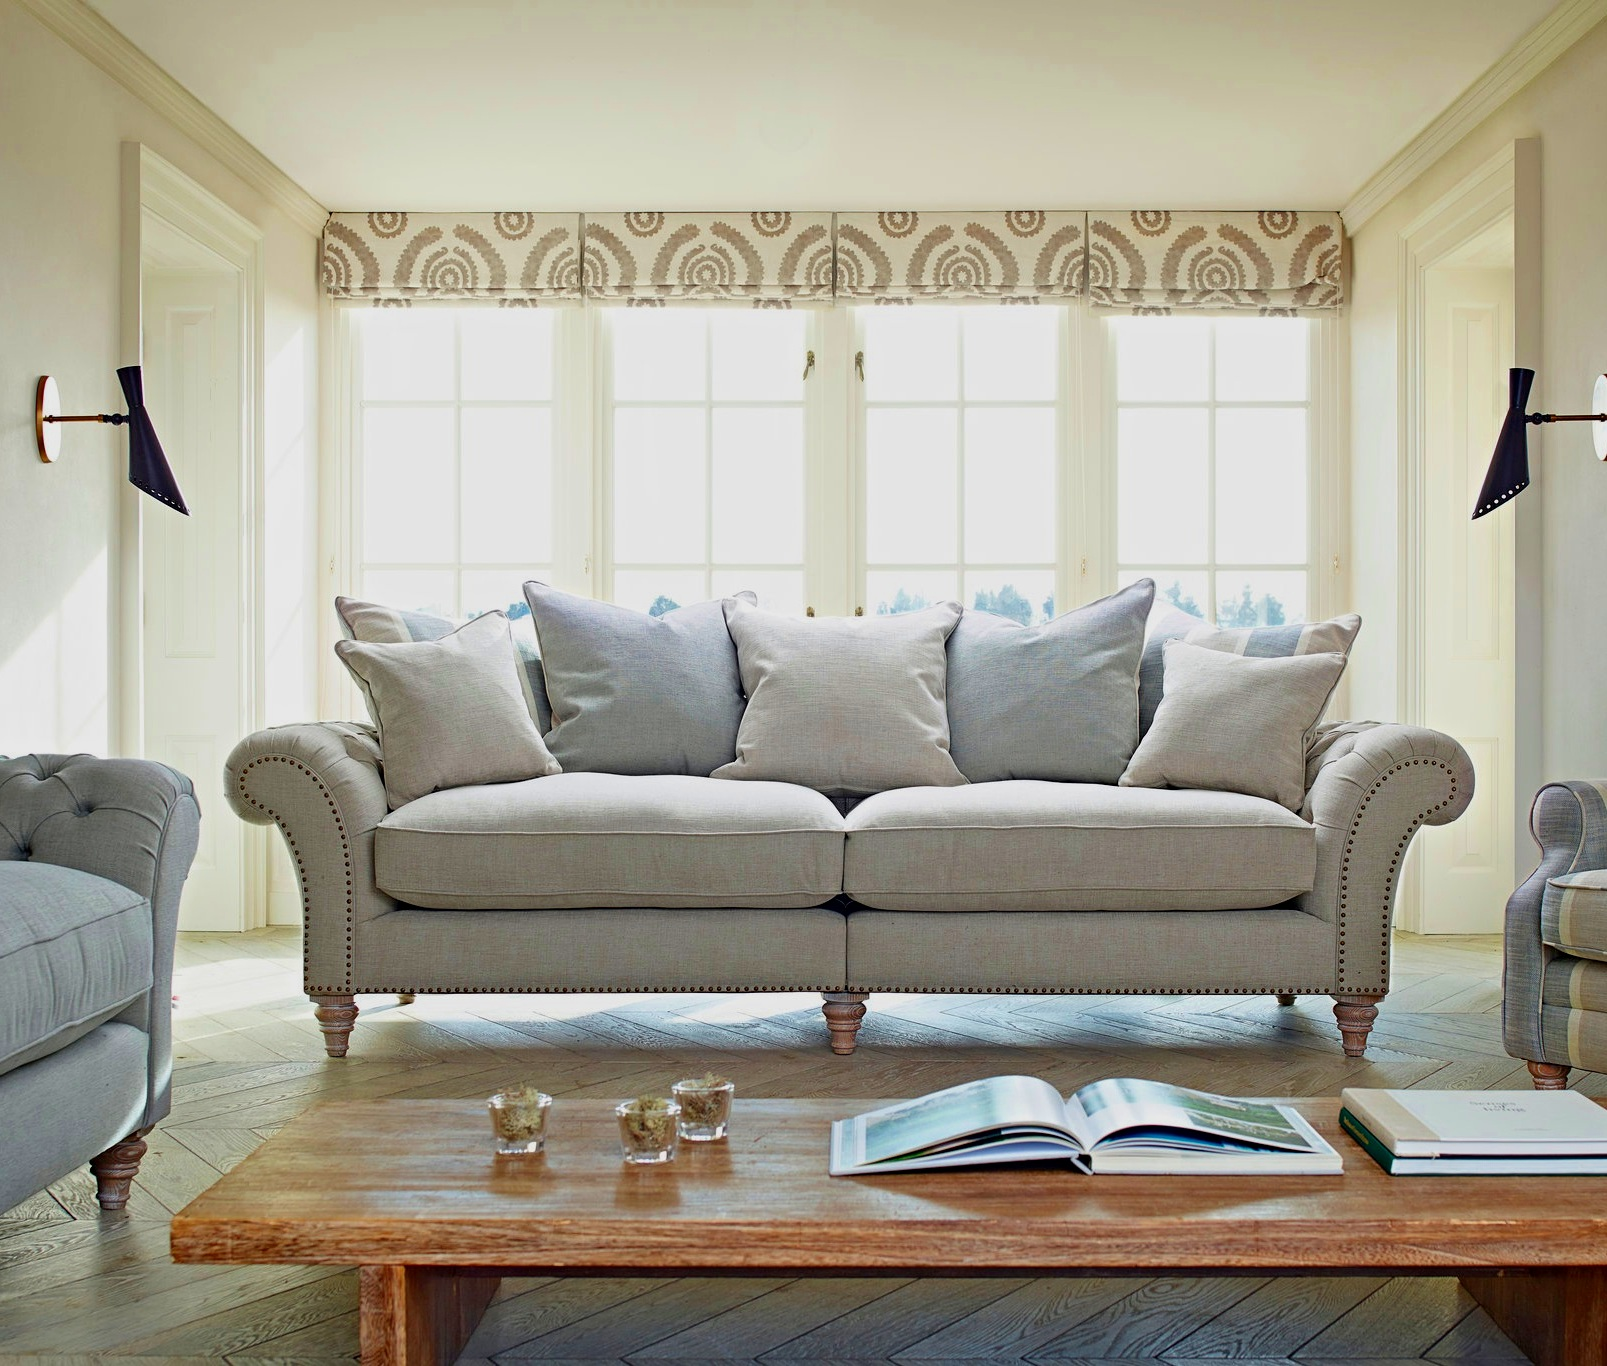 The Keaton   Grand Split Sofa: 265(W) 101(D) 101(H)  Extra Large: 243(W) 101(D) 101(H)  Large Sofa: 223(W) 101(D) 101(H)  Midi Sofa: 203(W) 101(D) 101(H)   Sofa prices from: £1095